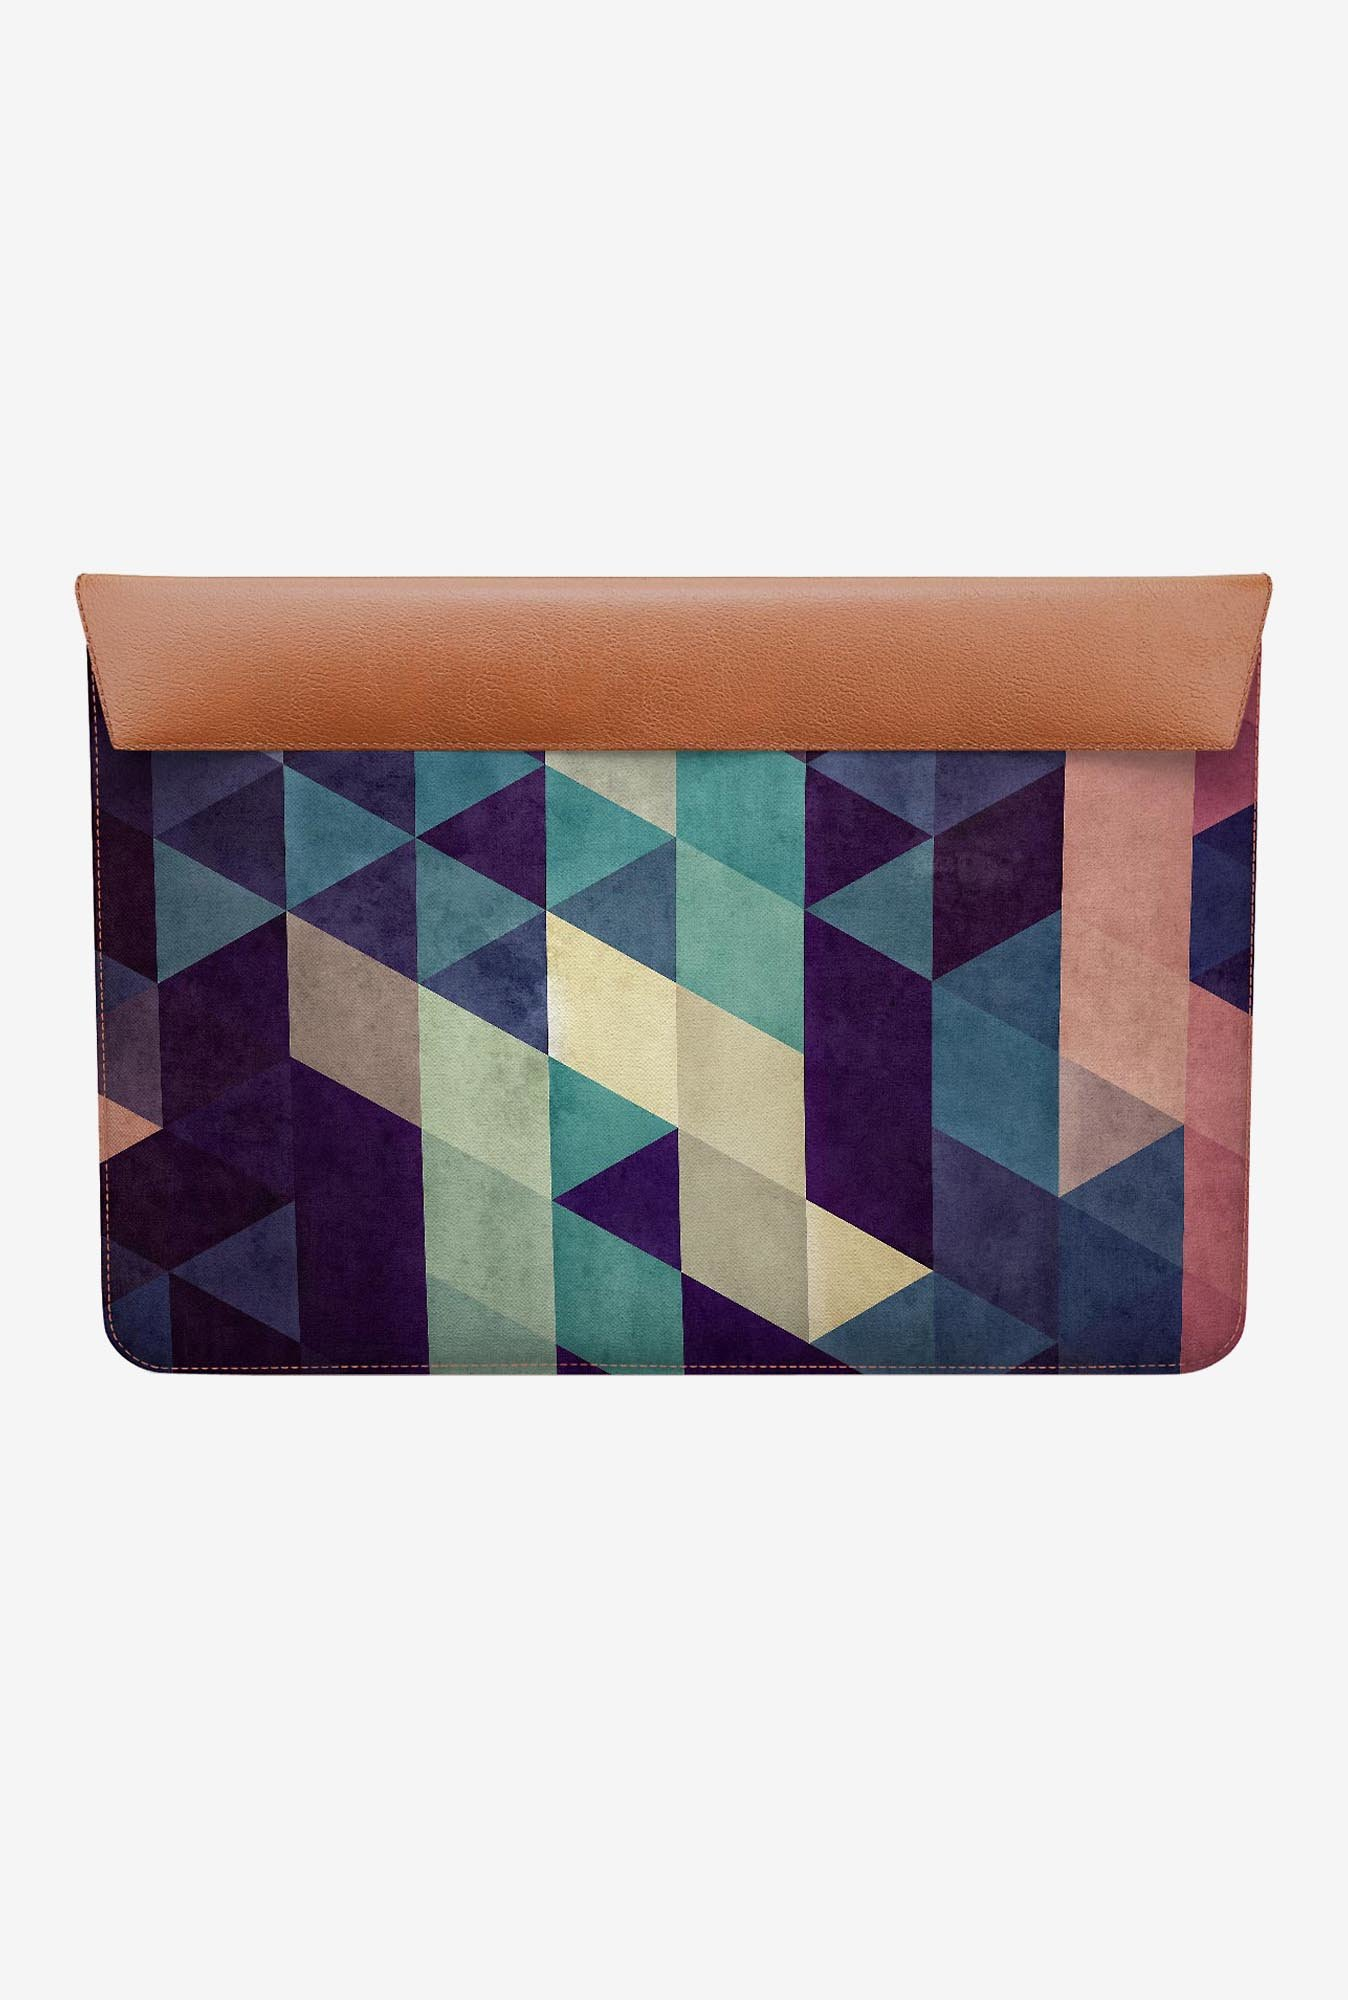 DailyObjects Cryyp Hrxtl MacBook Air 11 Envelope Sleeve